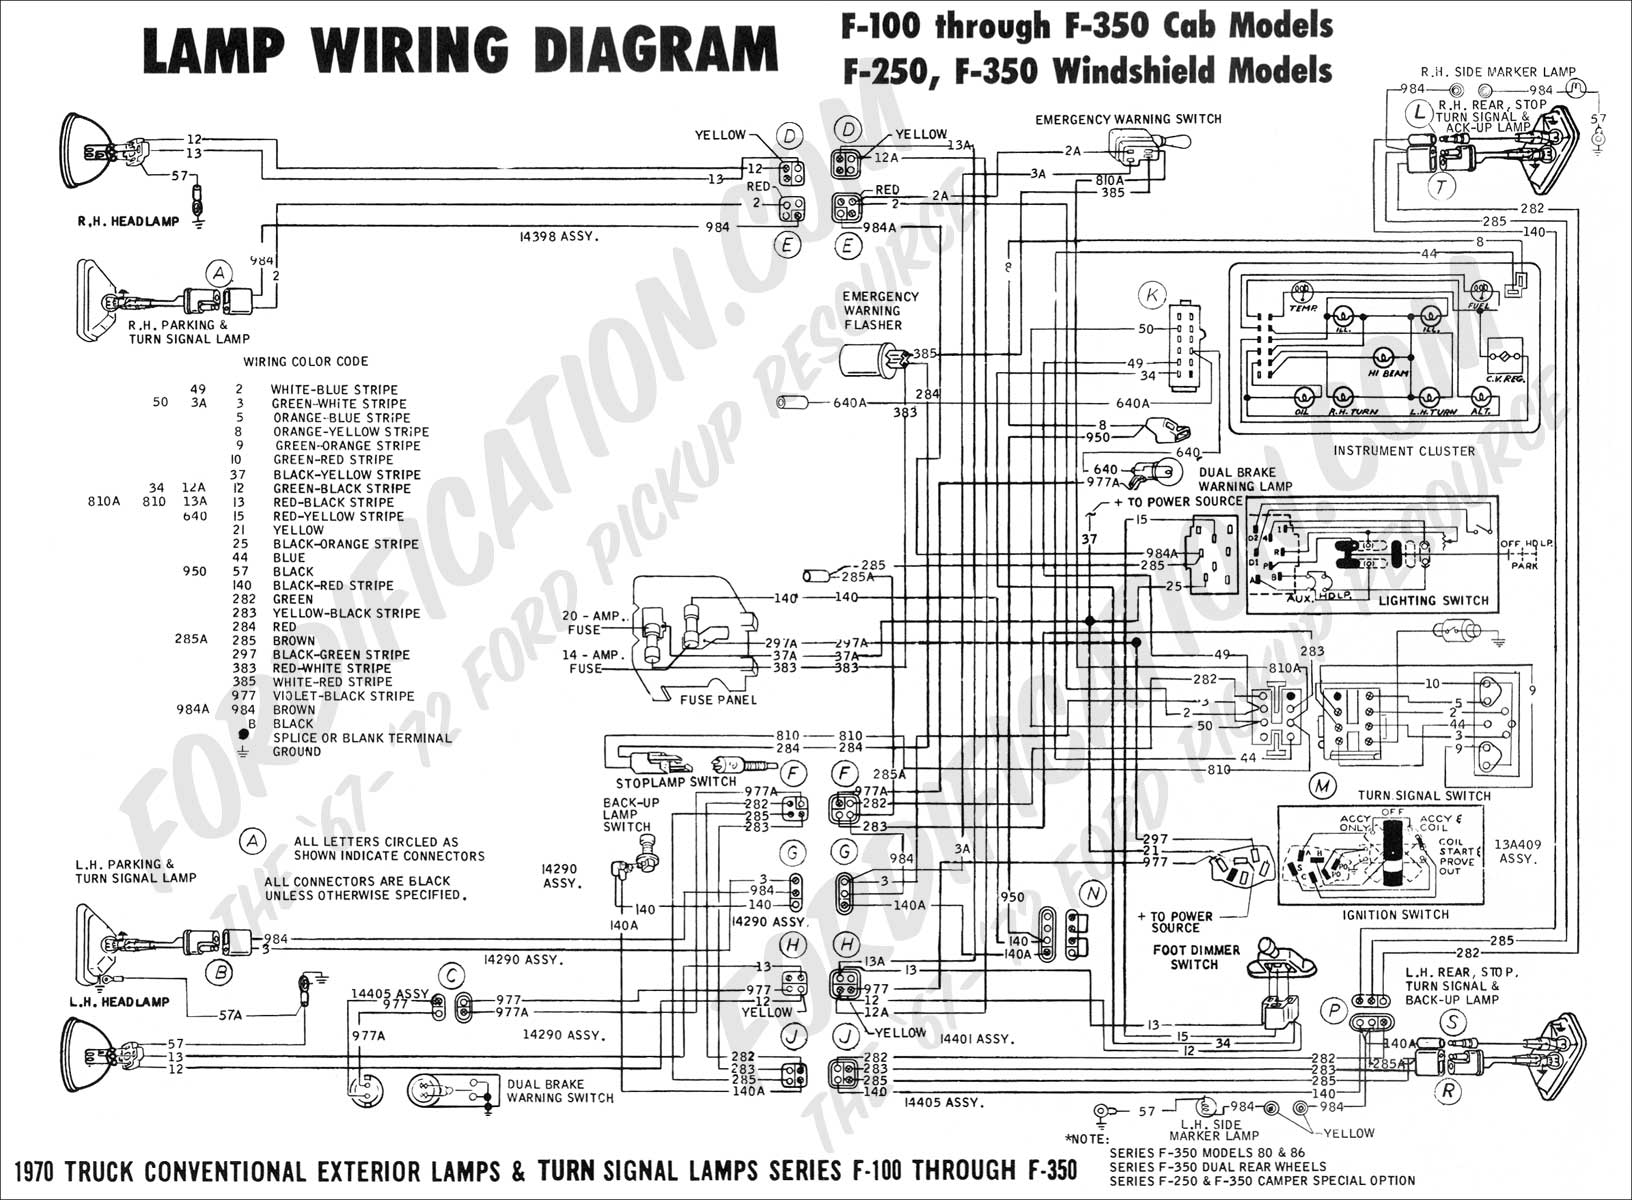 wiring diagram_70ext lights01 2008 ford f250 wiring diagram 2008 ford f250 remote start wiring 2000 ford f150 wiring schematic at n-0.co